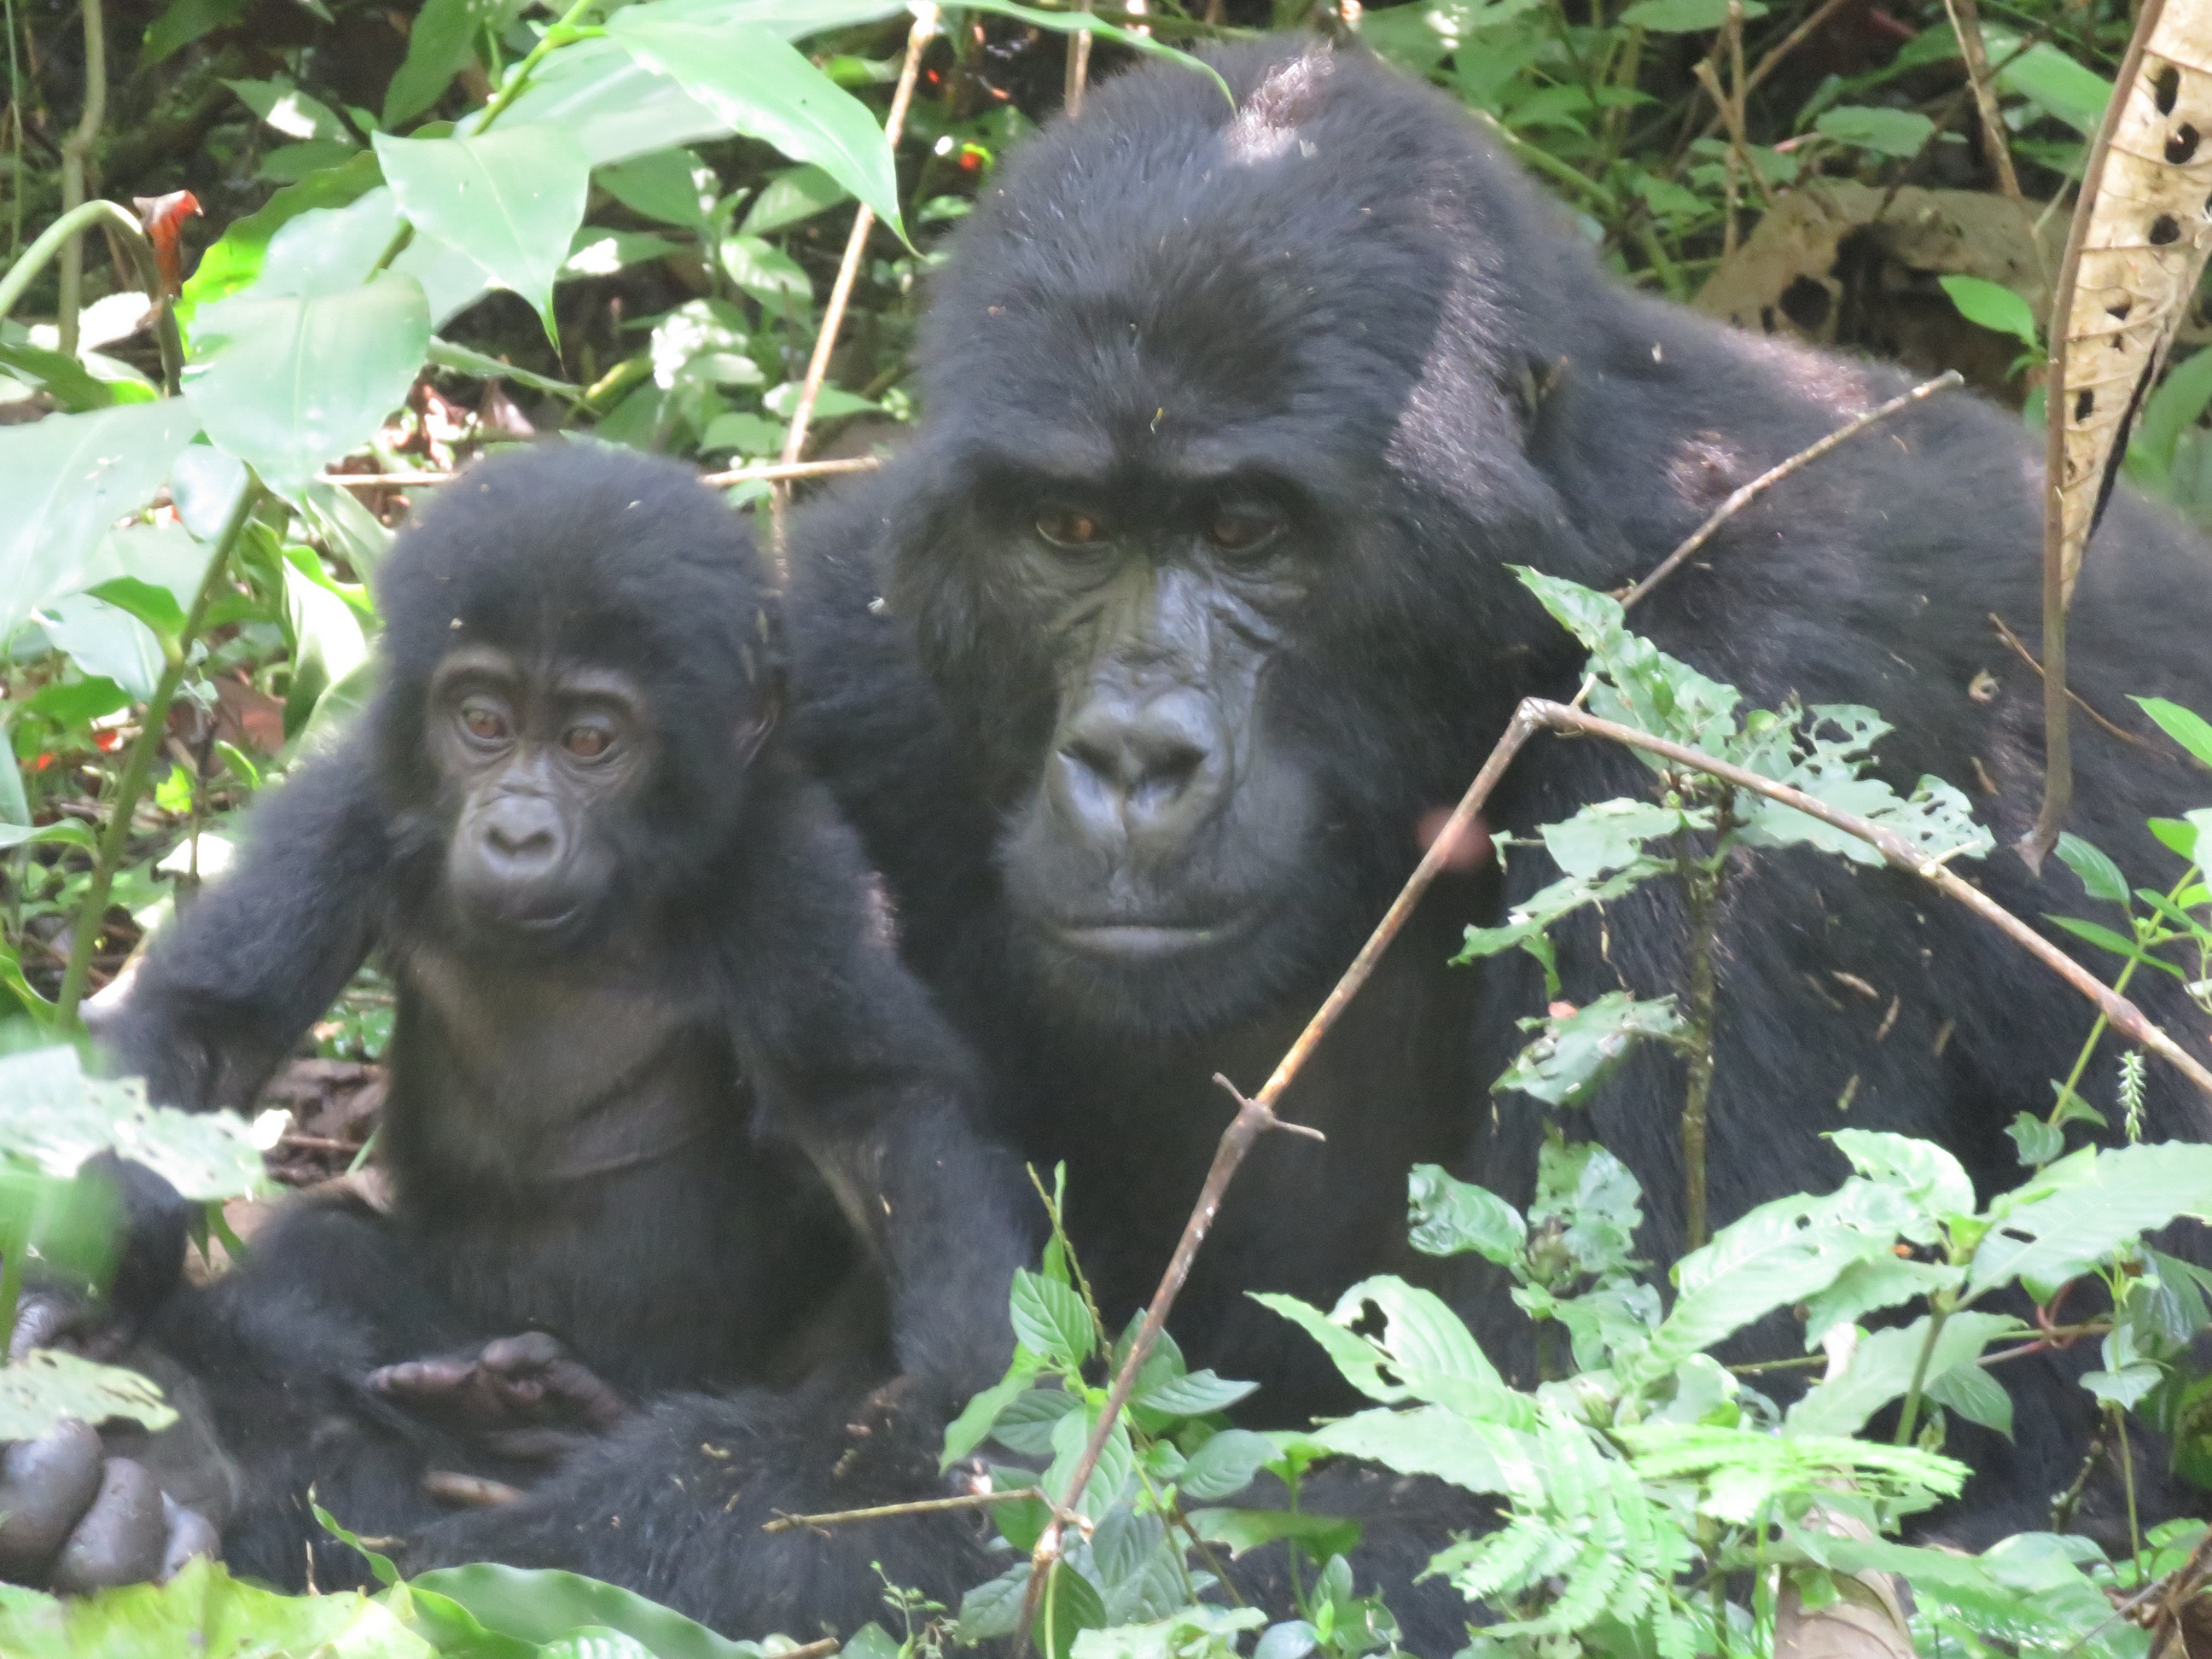 Gorilla safari in Uganda - by Vivenne Lewis